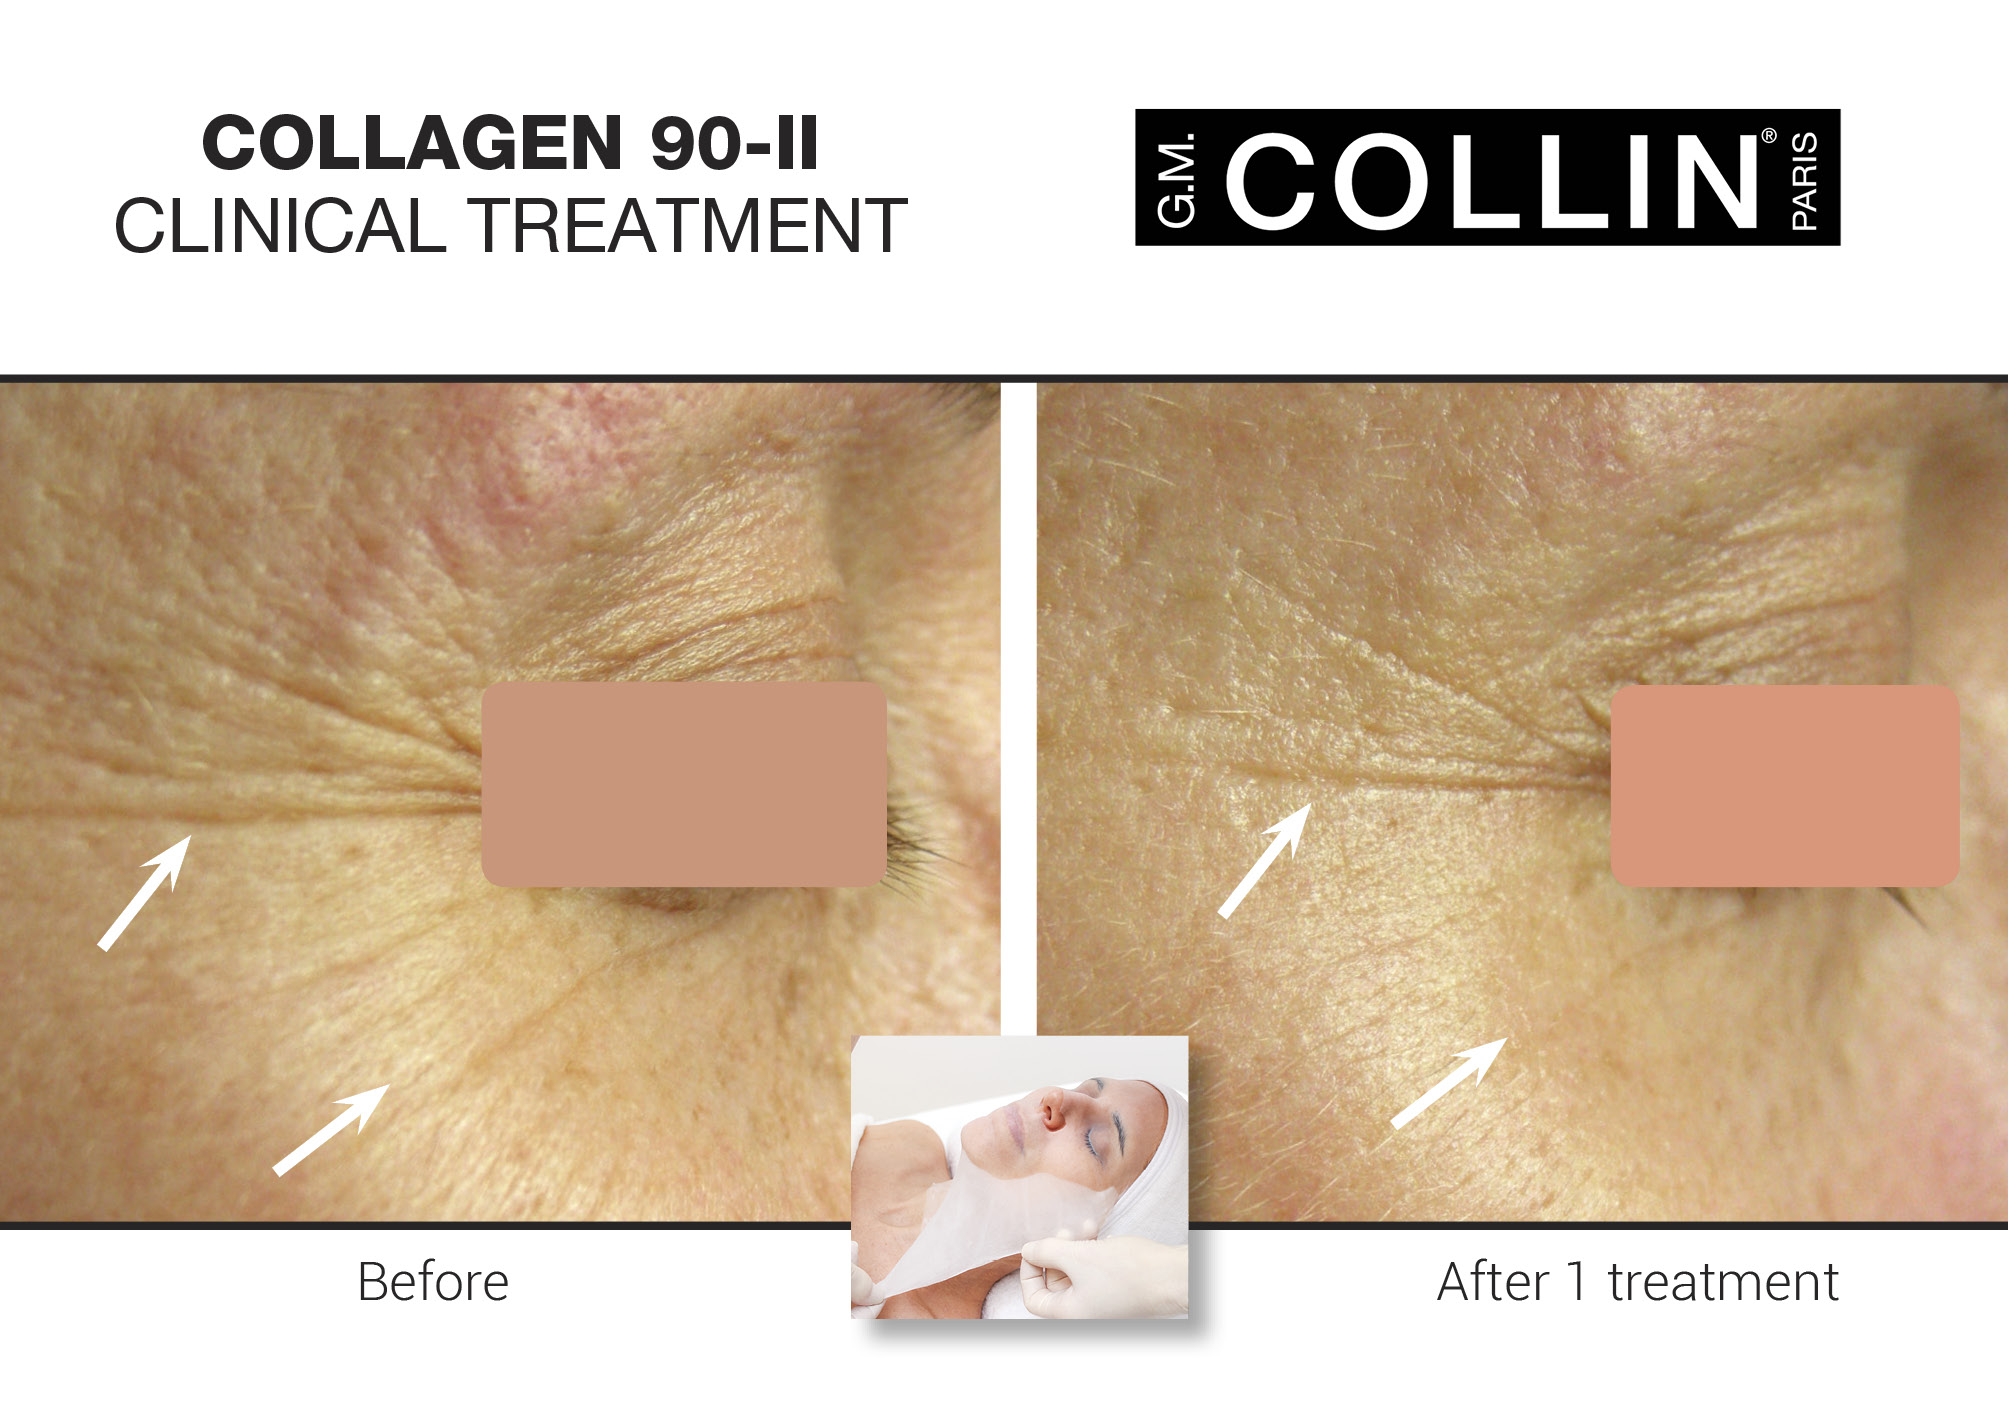 Collagen 90-II Anti-Aging Dermo-Corrective Mask Facial Treatment - Exclusive to G.M. Collin, this intensive anti-aging treatment hydrates, rejuvenates and reconfigures the skin's surface to subdue the visible signs of aging. An undisputable and scientifically proven treatment to fight the signs of skin aging. It improves the overall complexion by minimizing the appearance of lines and wrinkles. Cocoons and quenches the skin, leaving it well hydrated and radiant.$145 (120 minutes)